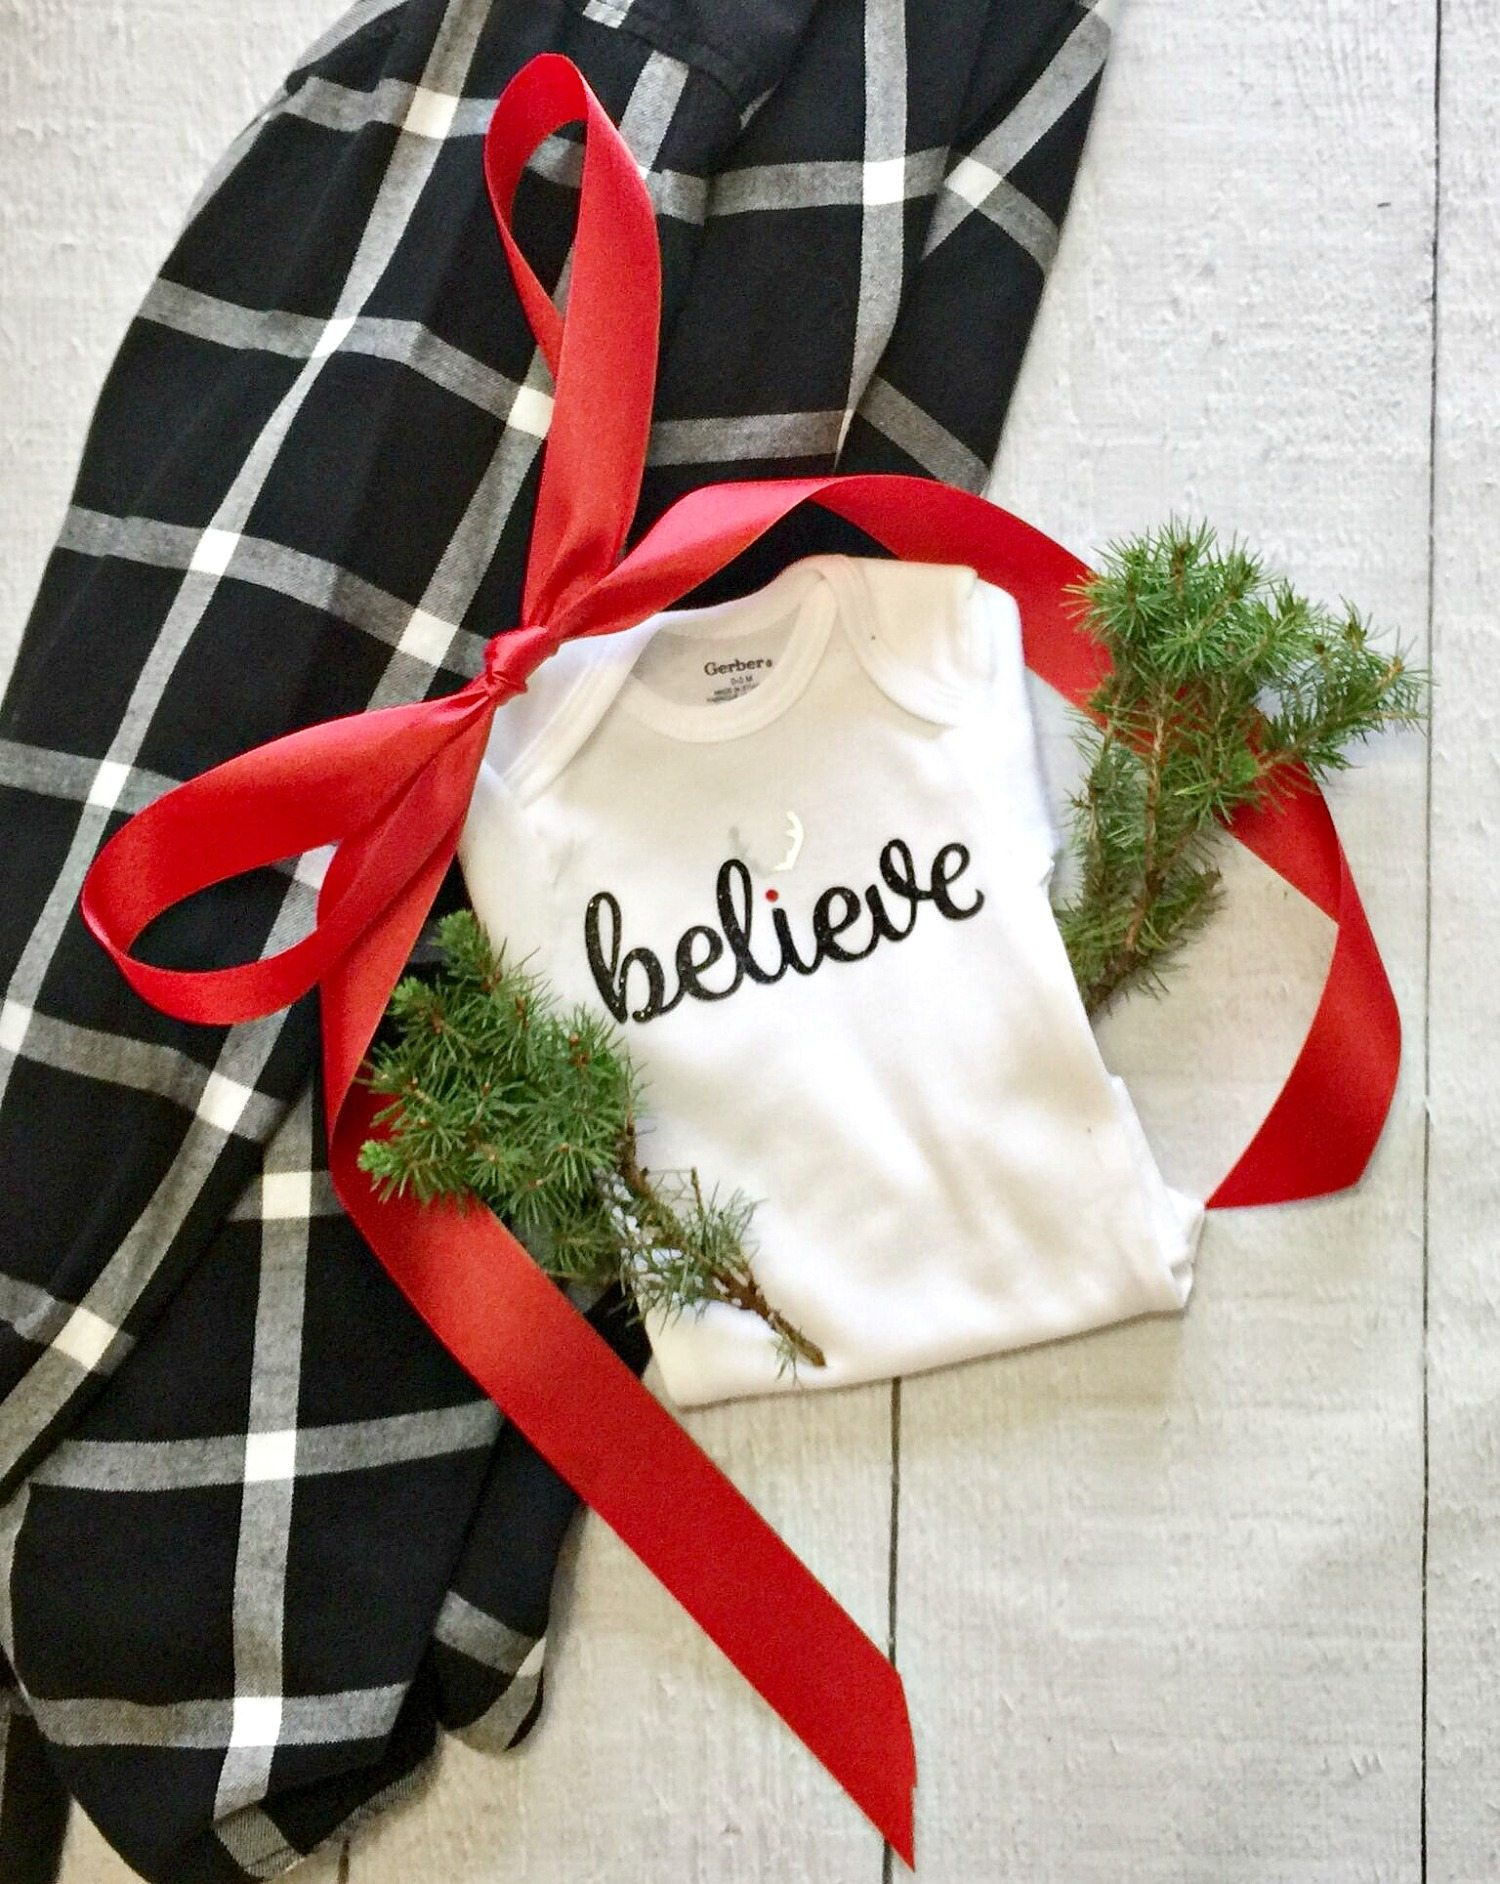 Cutest Christmas onesie